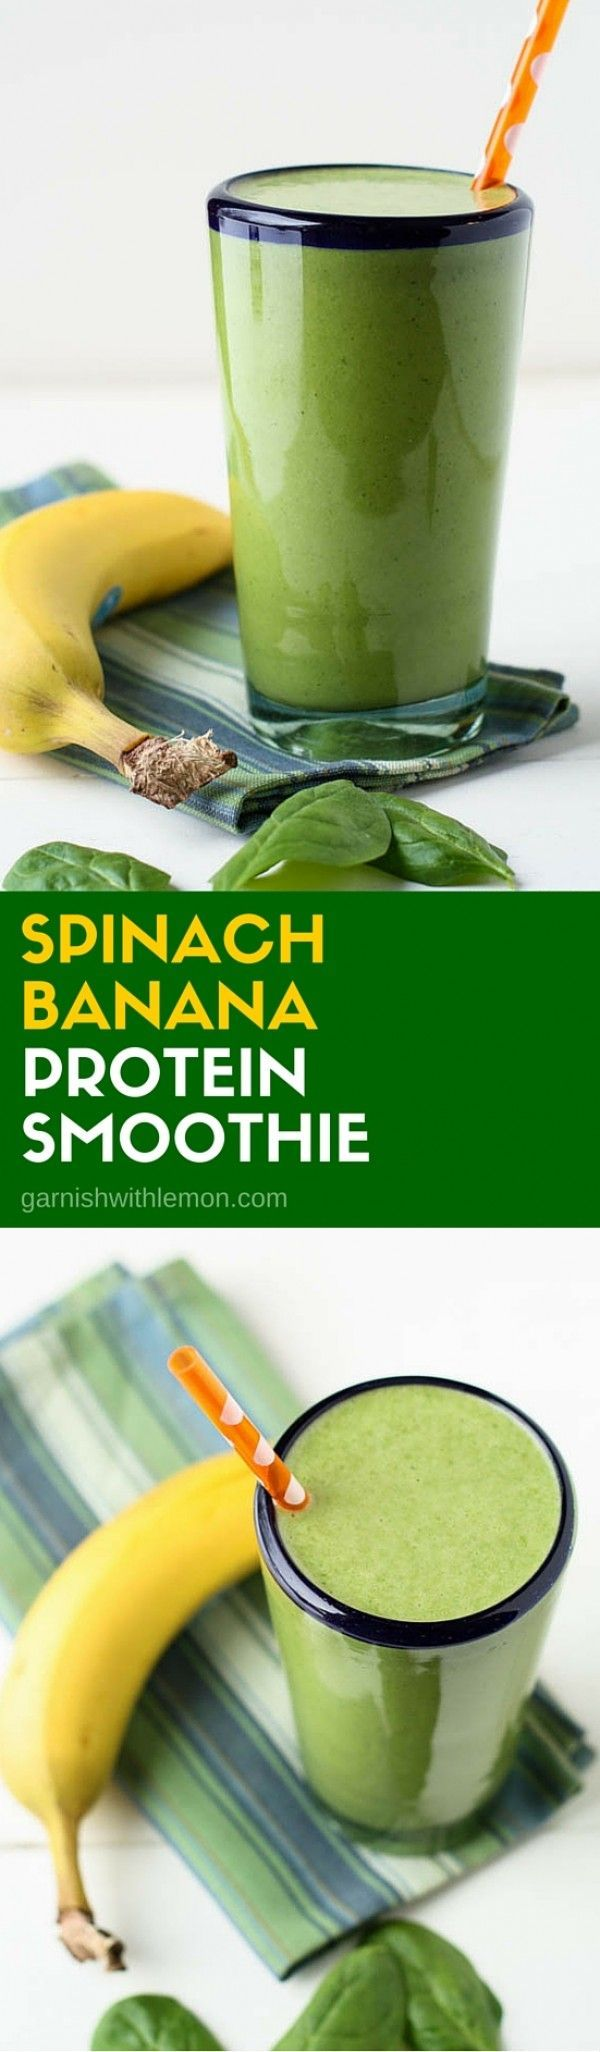 Get the recipe Spinach Banana Protein Smoothie @recipes_to_go